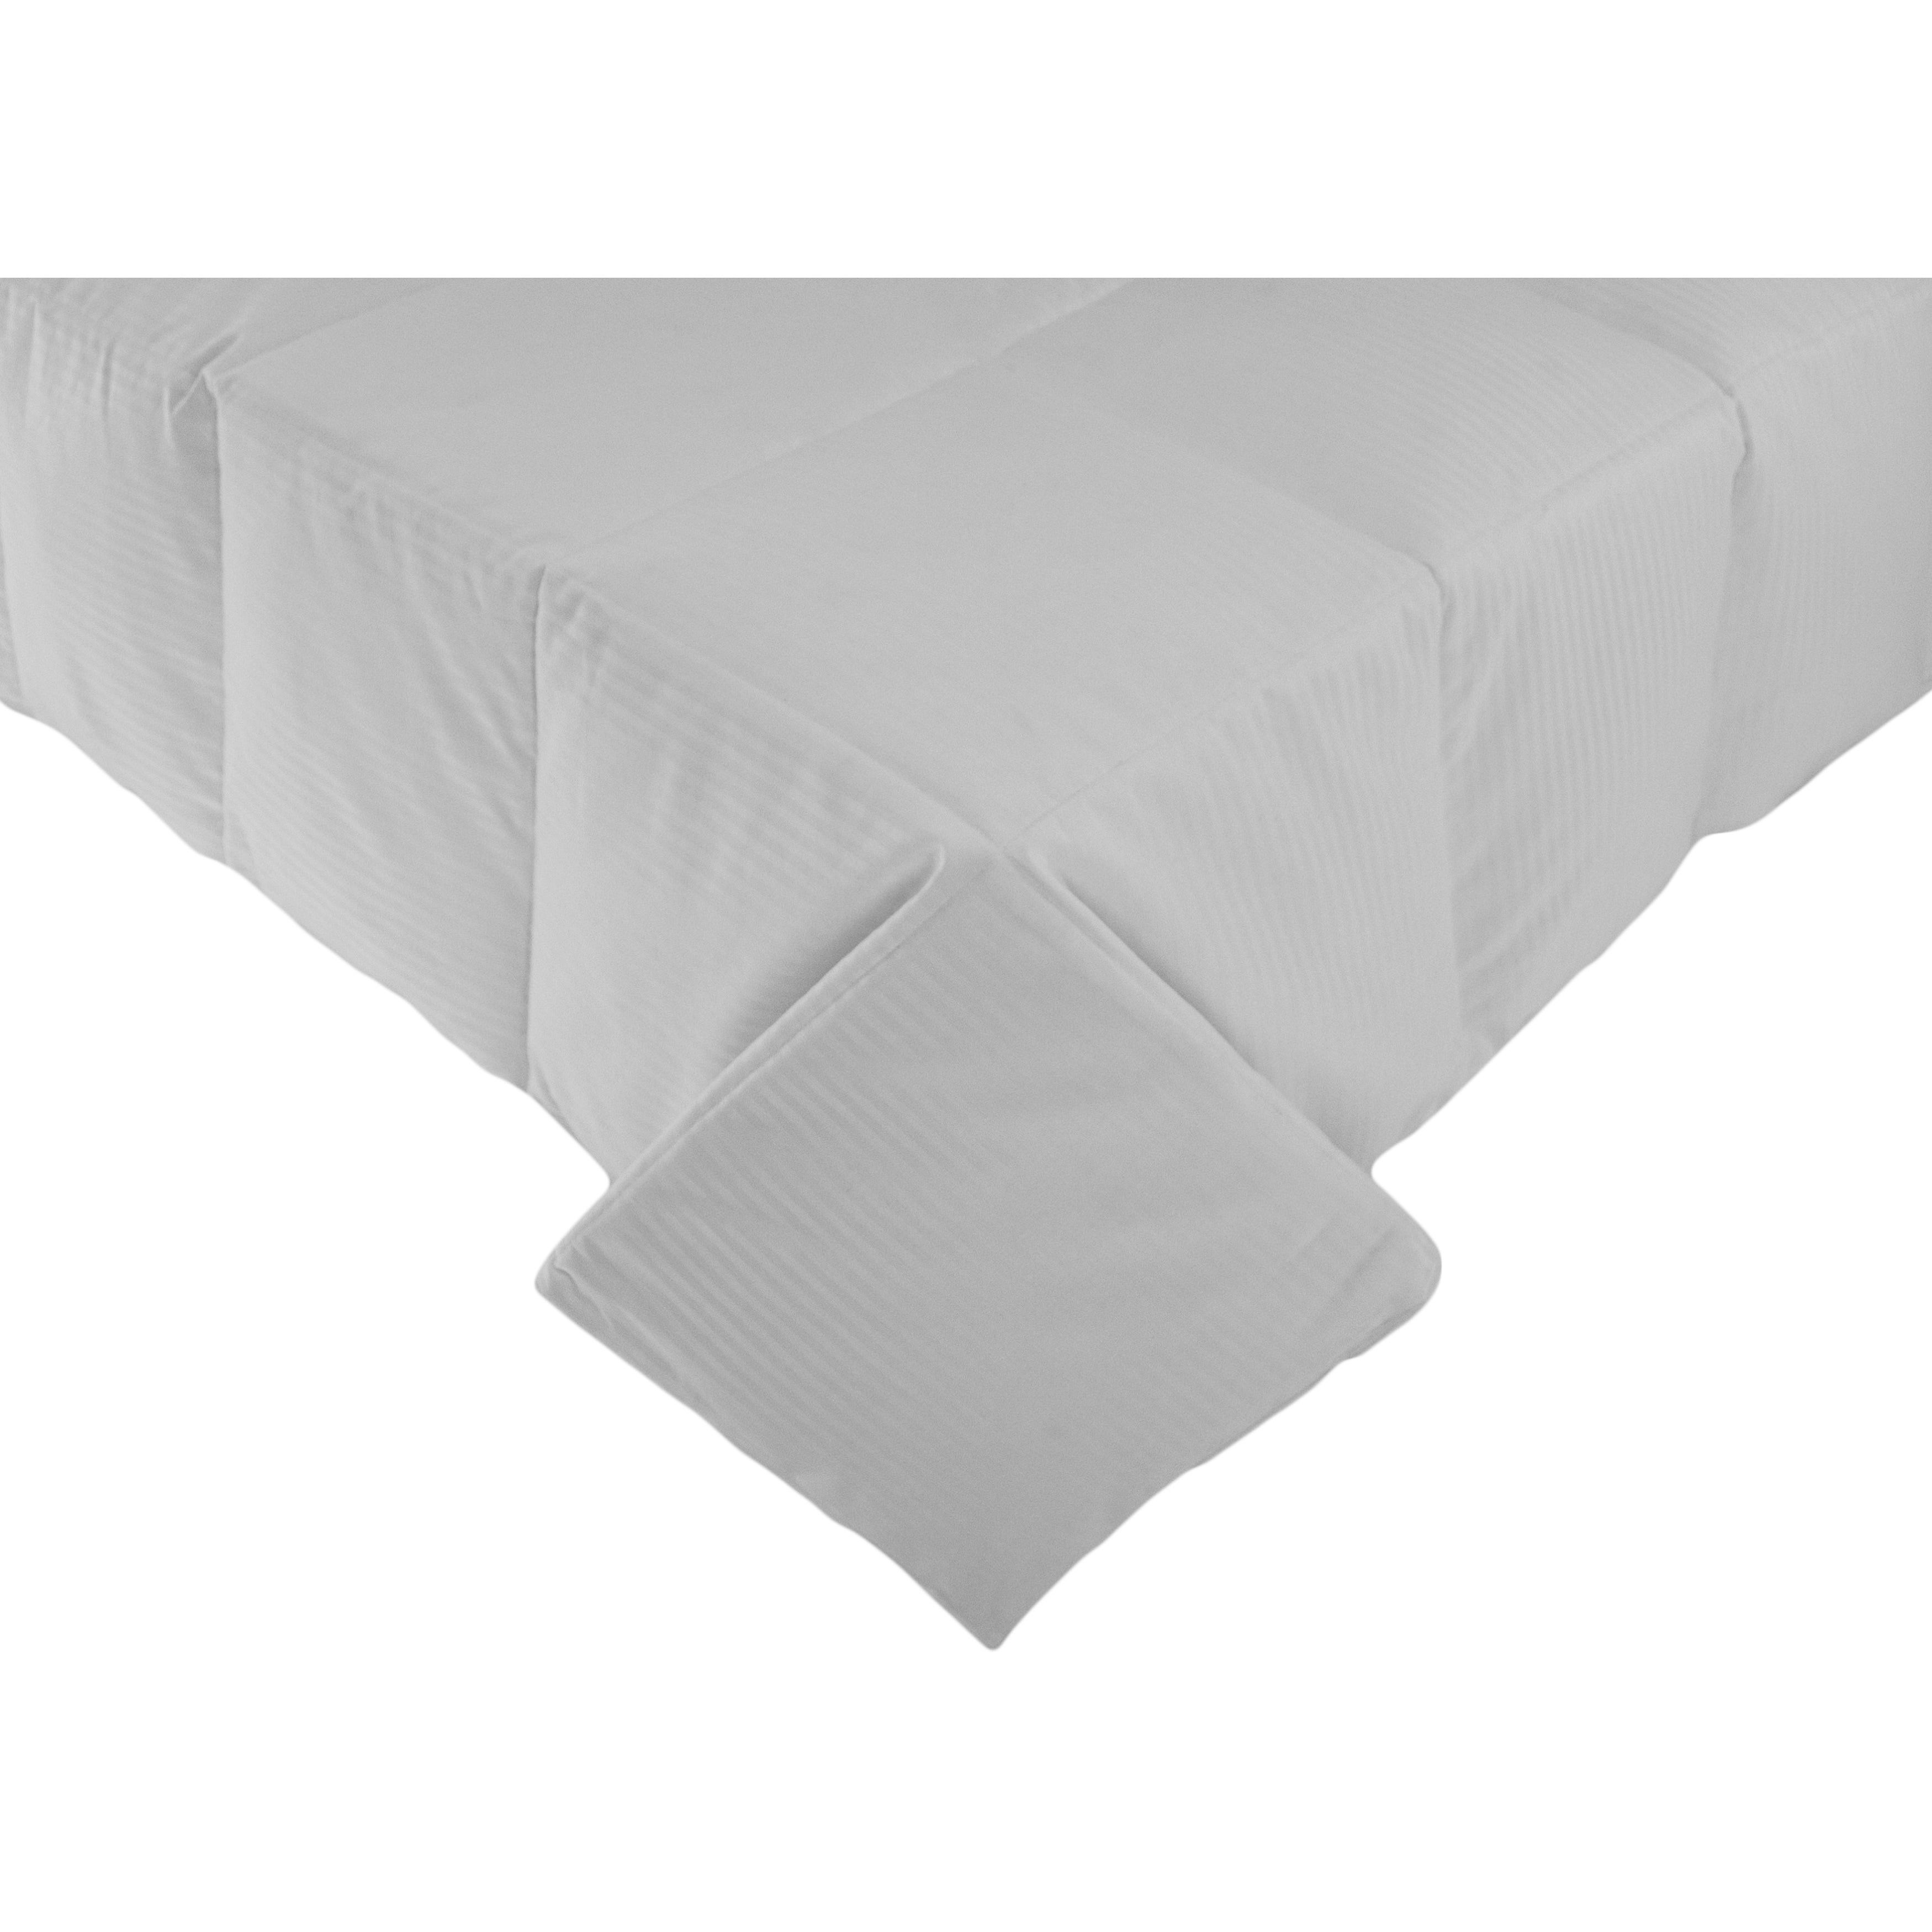 baffle overstock count goose bath thread comforter bedding european free hungarian today box down white product shipping legacy